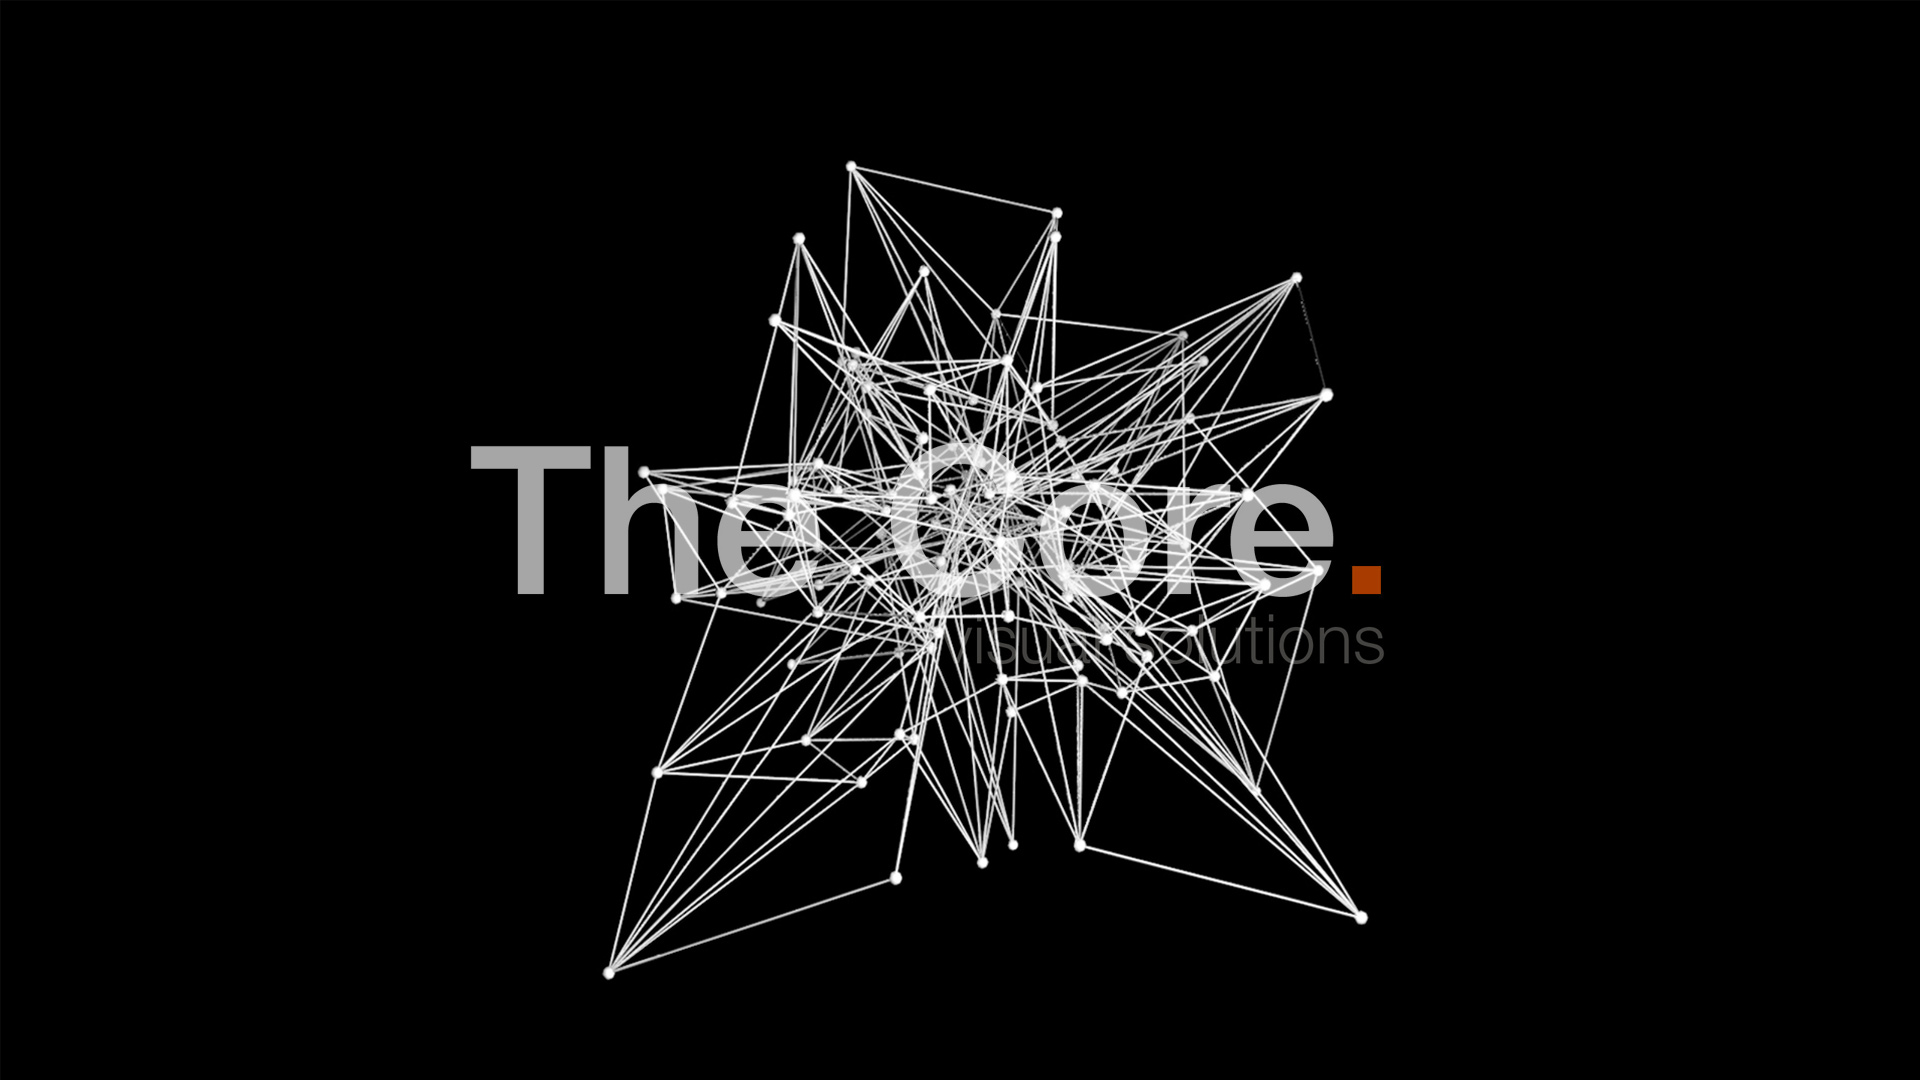 00248-ATOM2-WIRE-1-STILL-by-The-Core